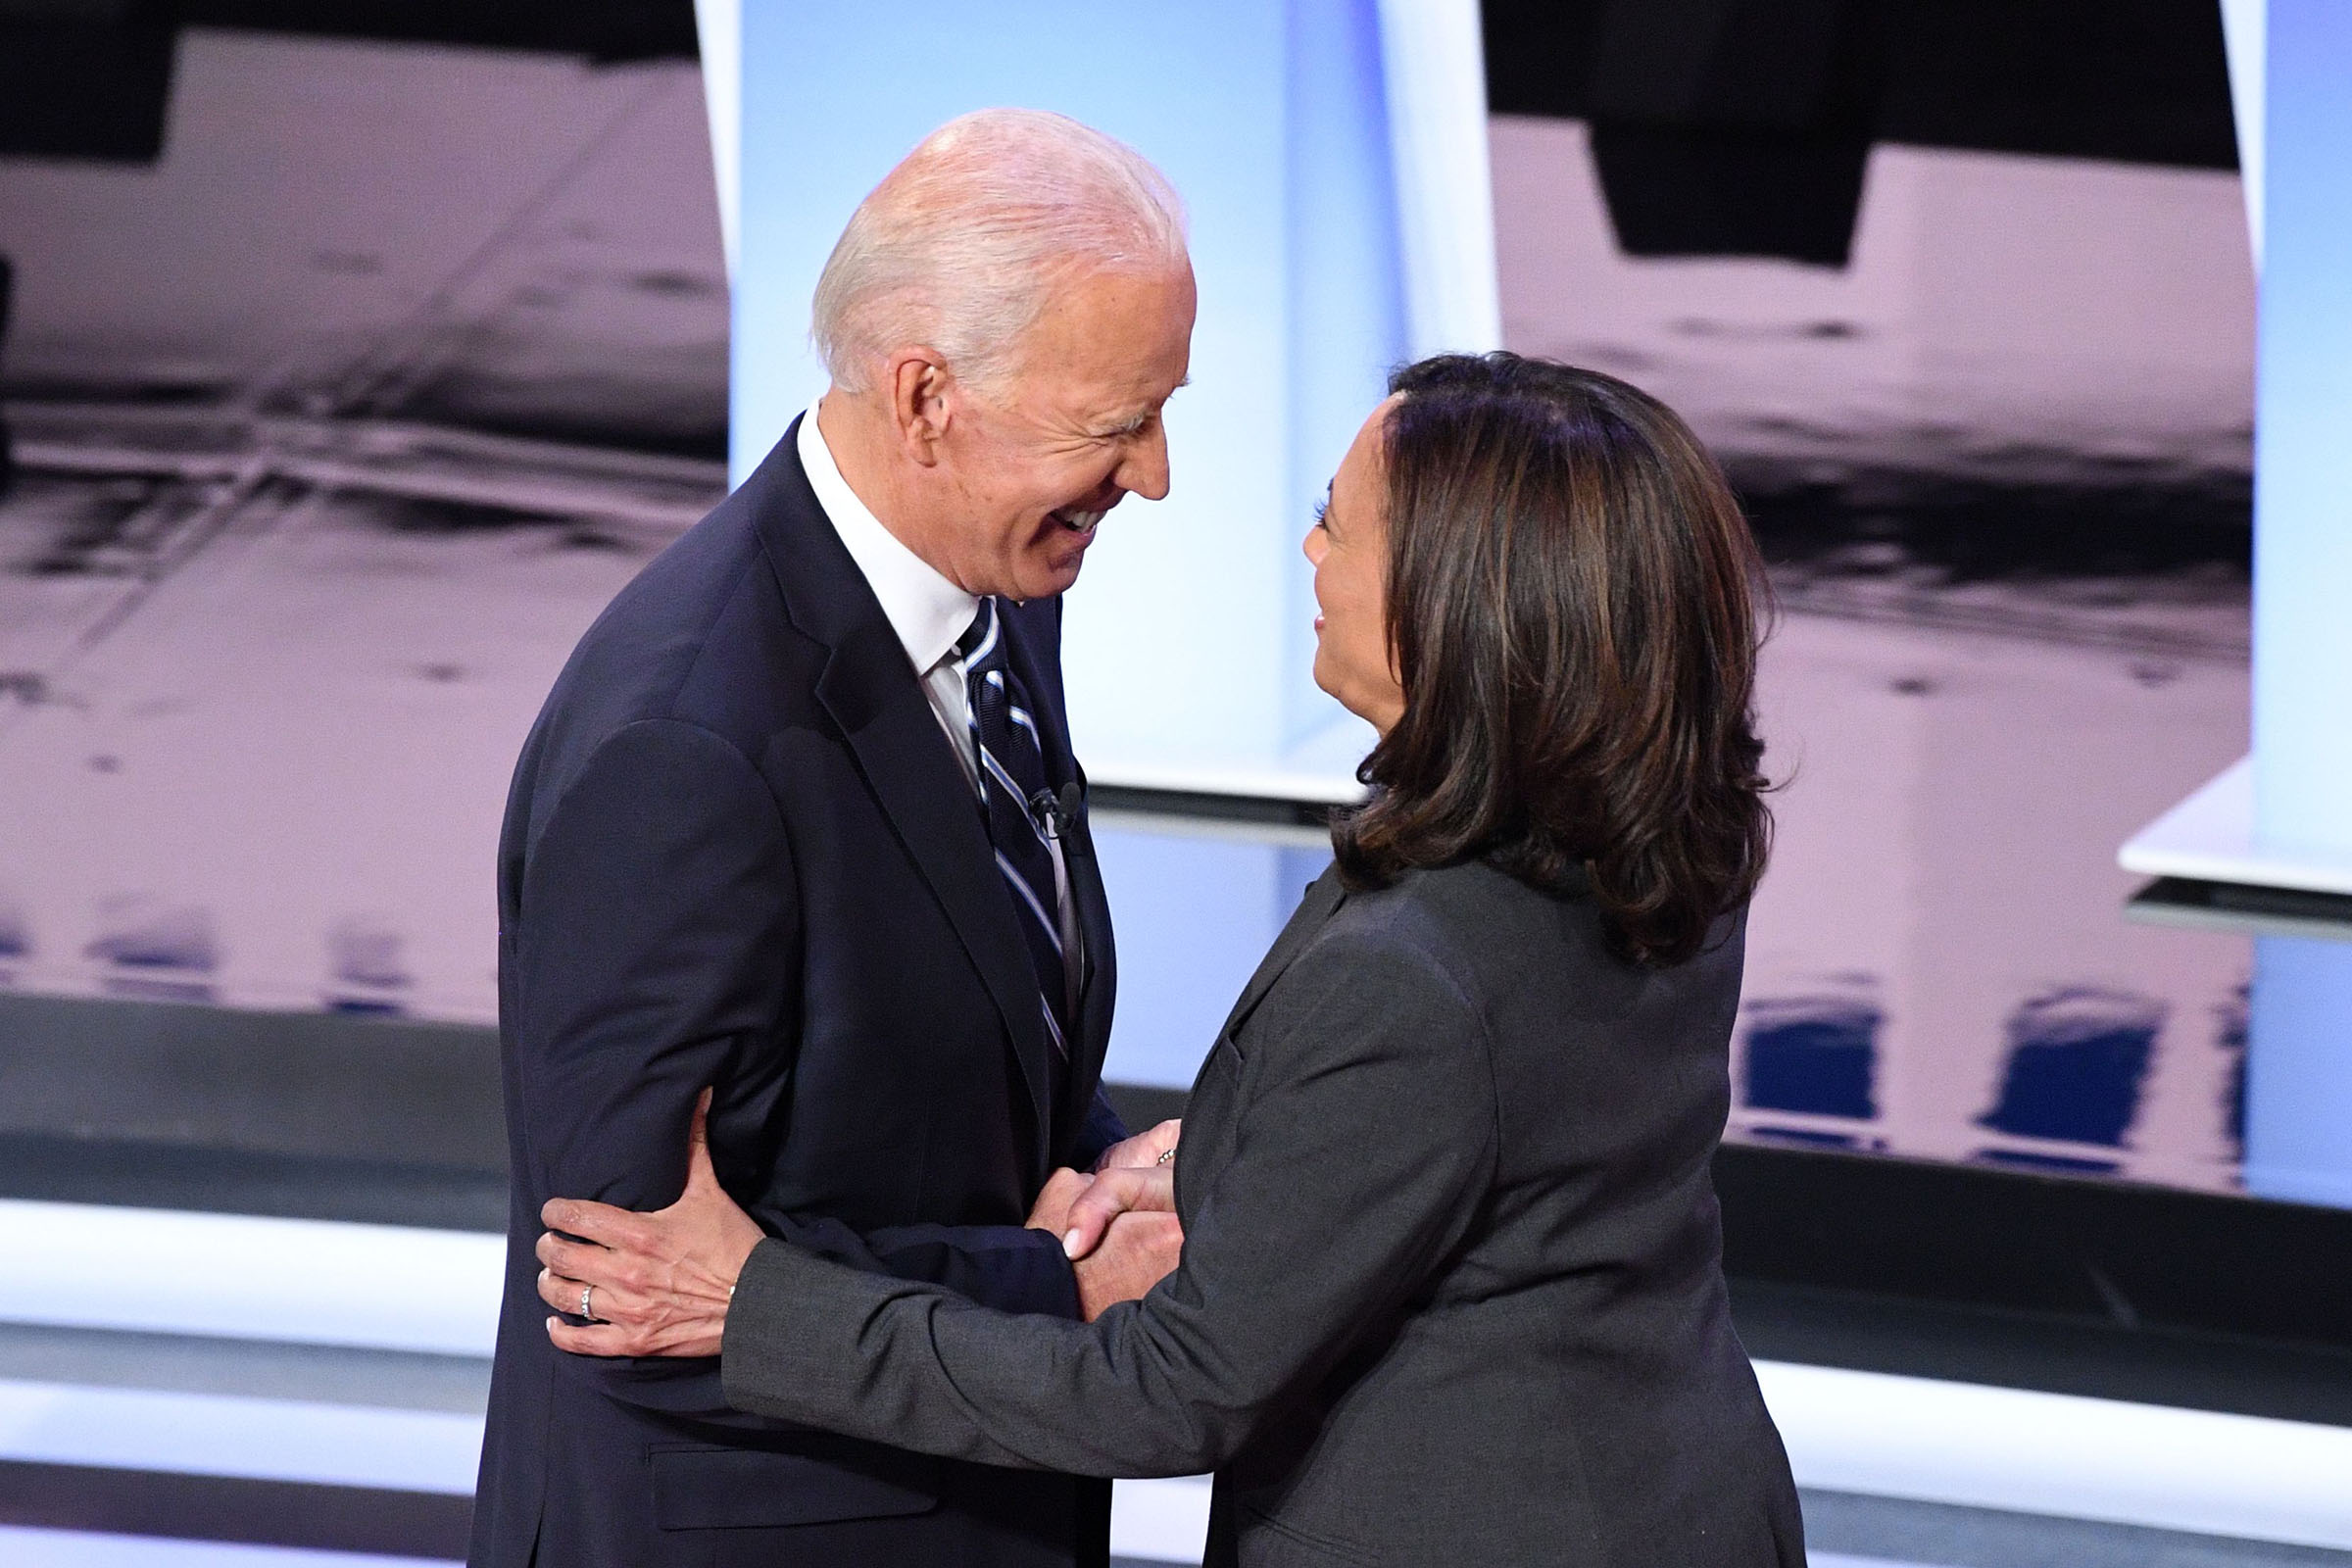 Democratic presidential hopefuls former Vice President Joe Biden (L) and US Senator from California Kamala Harris greet each other ahead of the second round of the second Democratic primary debate of the 2020 presidential campaign season hosted by CNN at the Fox Theatre in Detroit, Michigan on July 31, 2019.